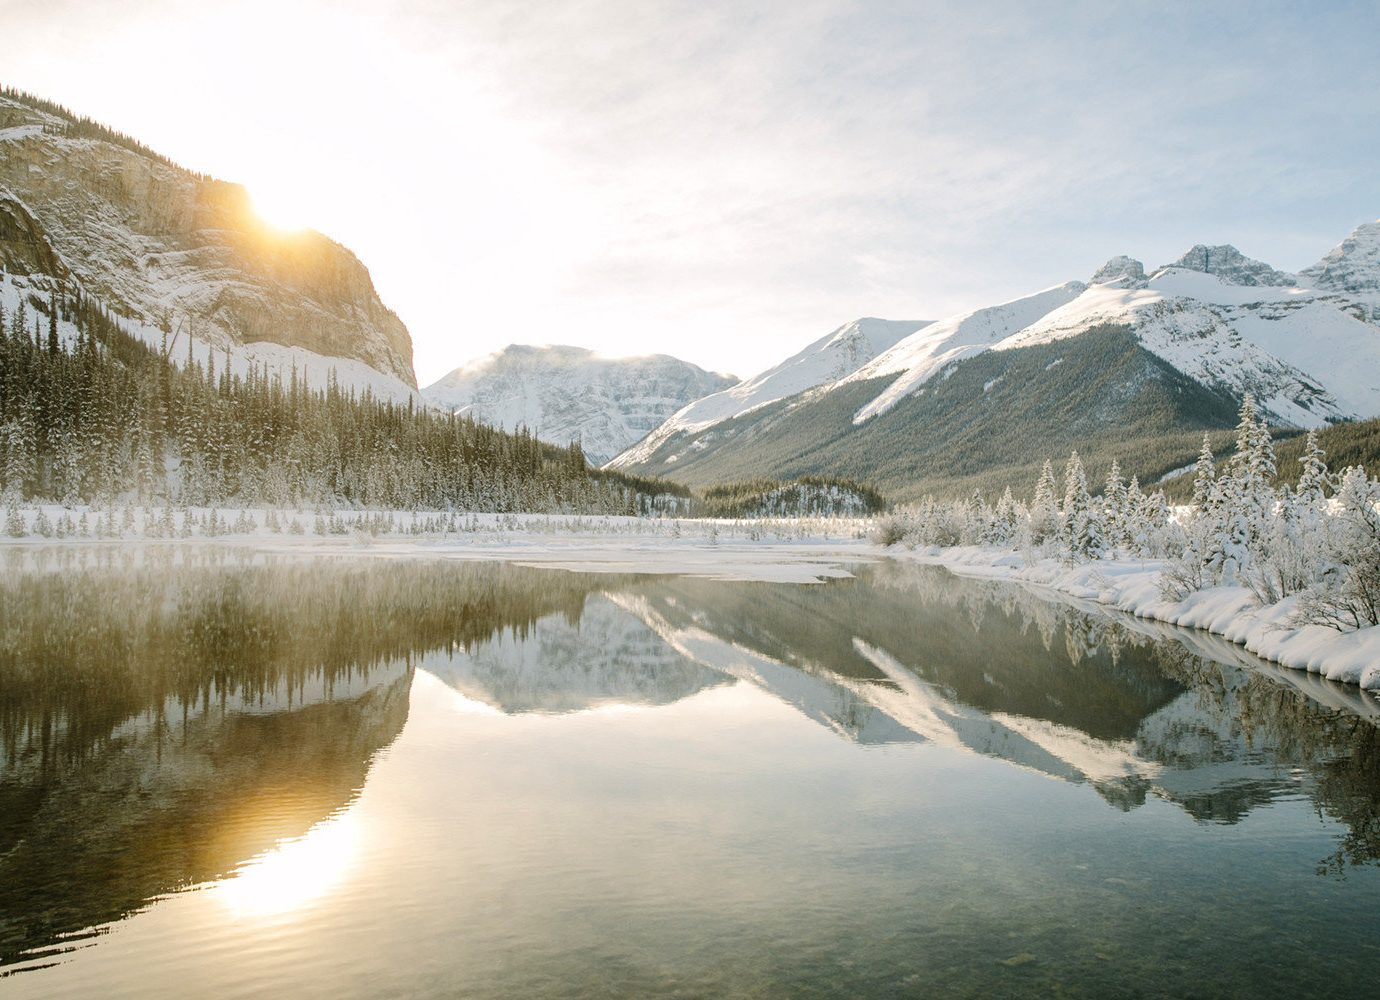 Alberta Canada Road Trips Trip Ideas outdoor Nature sky reflection mountain water Winter snow mountainous landforms wilderness Lake freezing mountain range morning bank tree alps mount scenery sunlight landscape River fell reservoir loch fjord water resources glacial landform national park ice cloud computer wallpaper calm lake district tarn